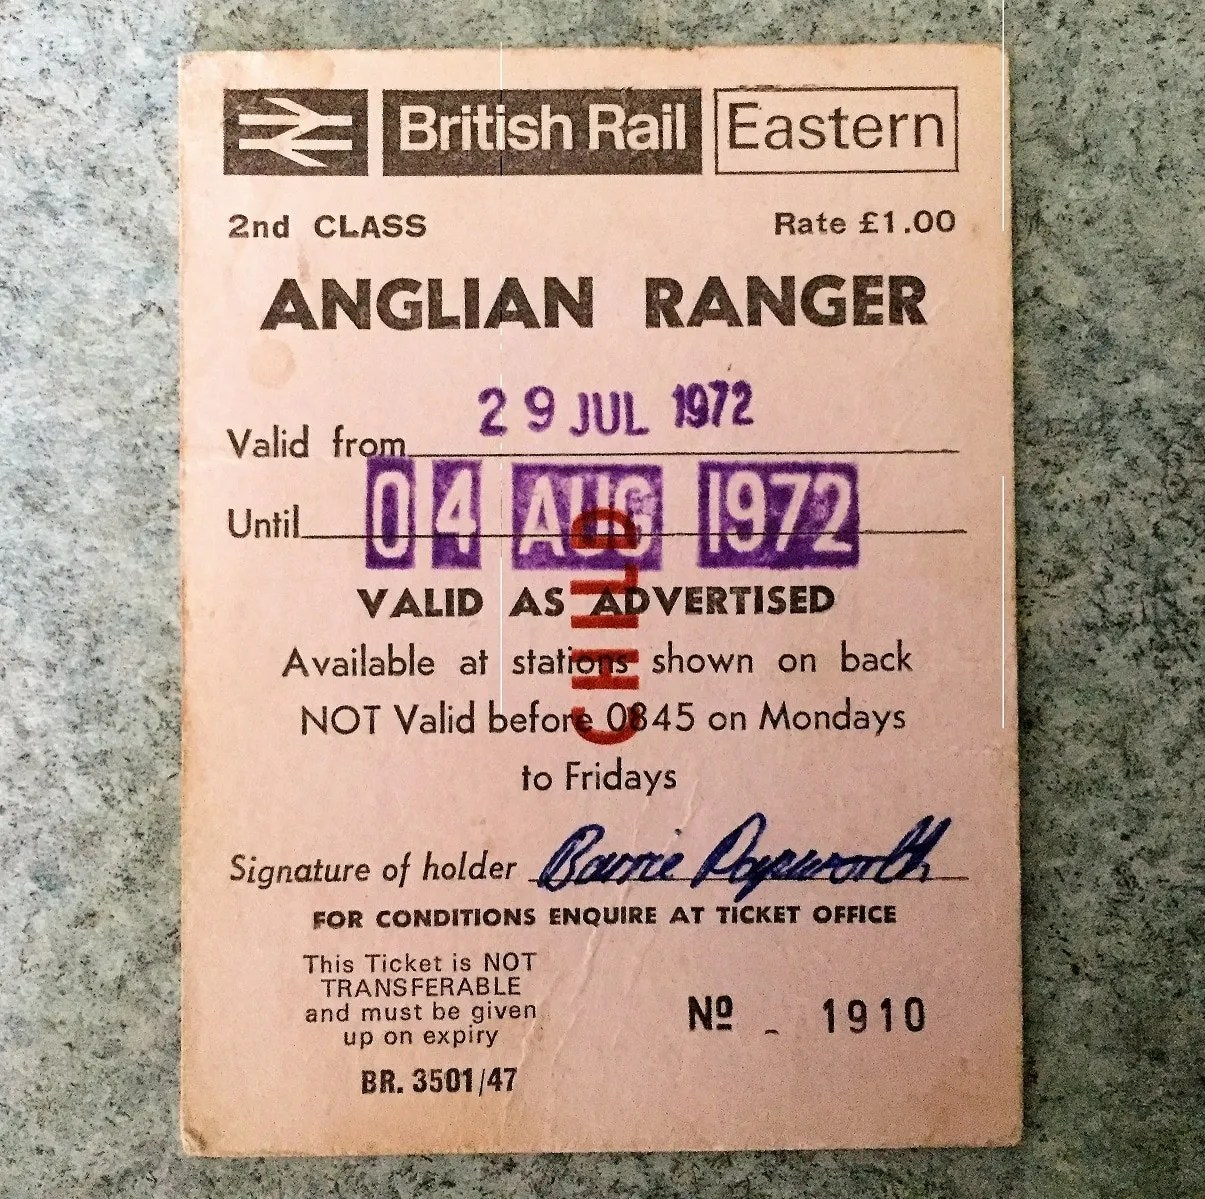 My British Rail Eastern Region Rover - Anglian Ranger ticket that I used in 1972